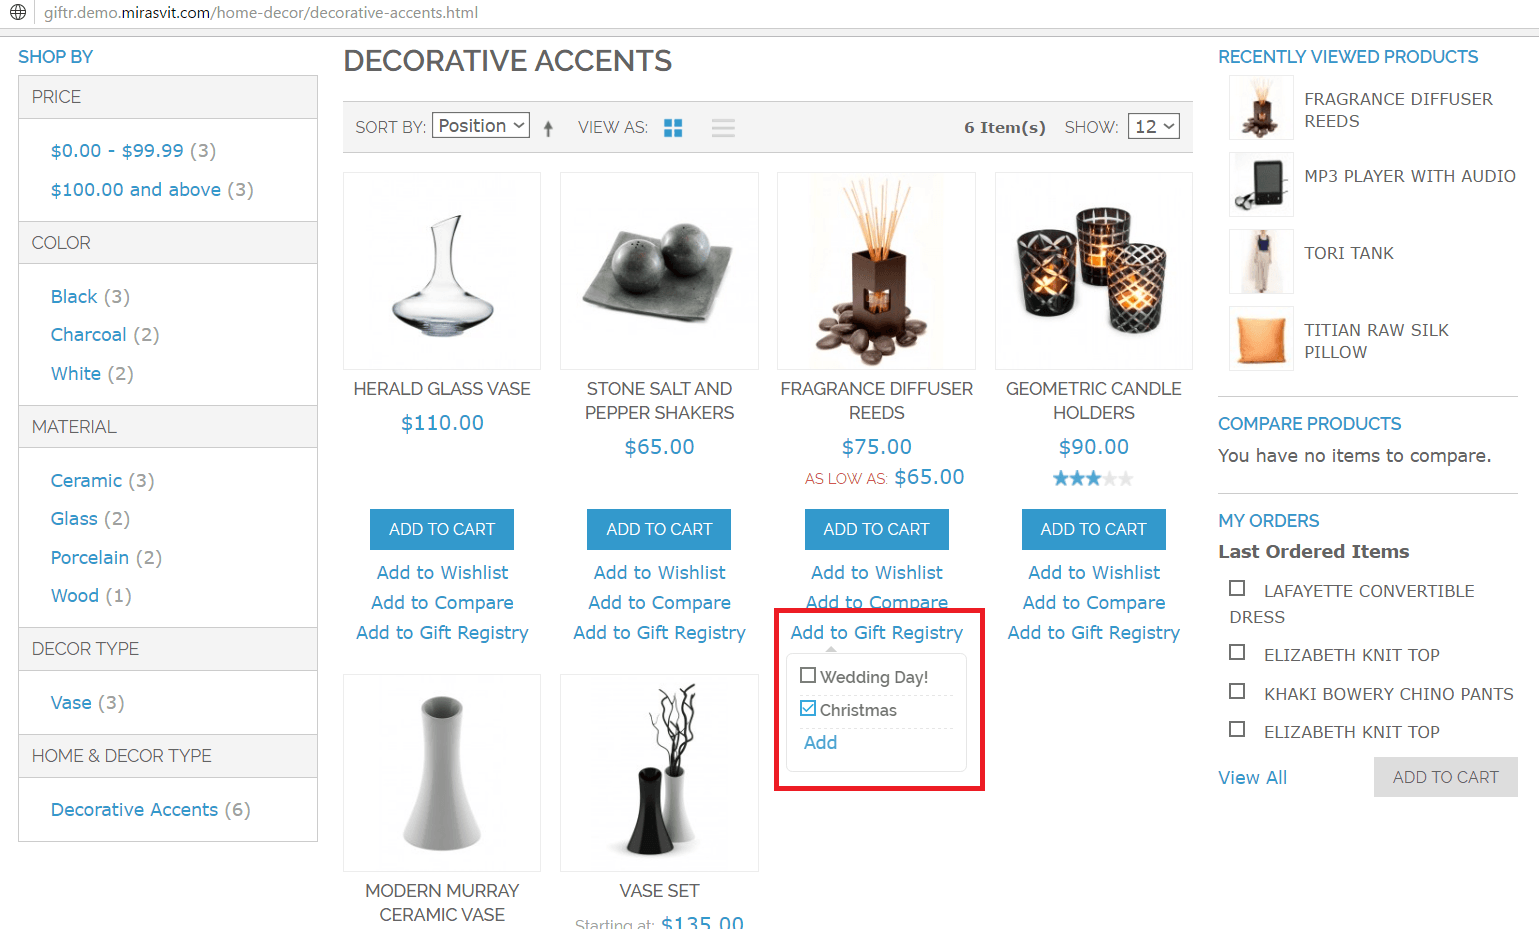 Adding items to gift registry